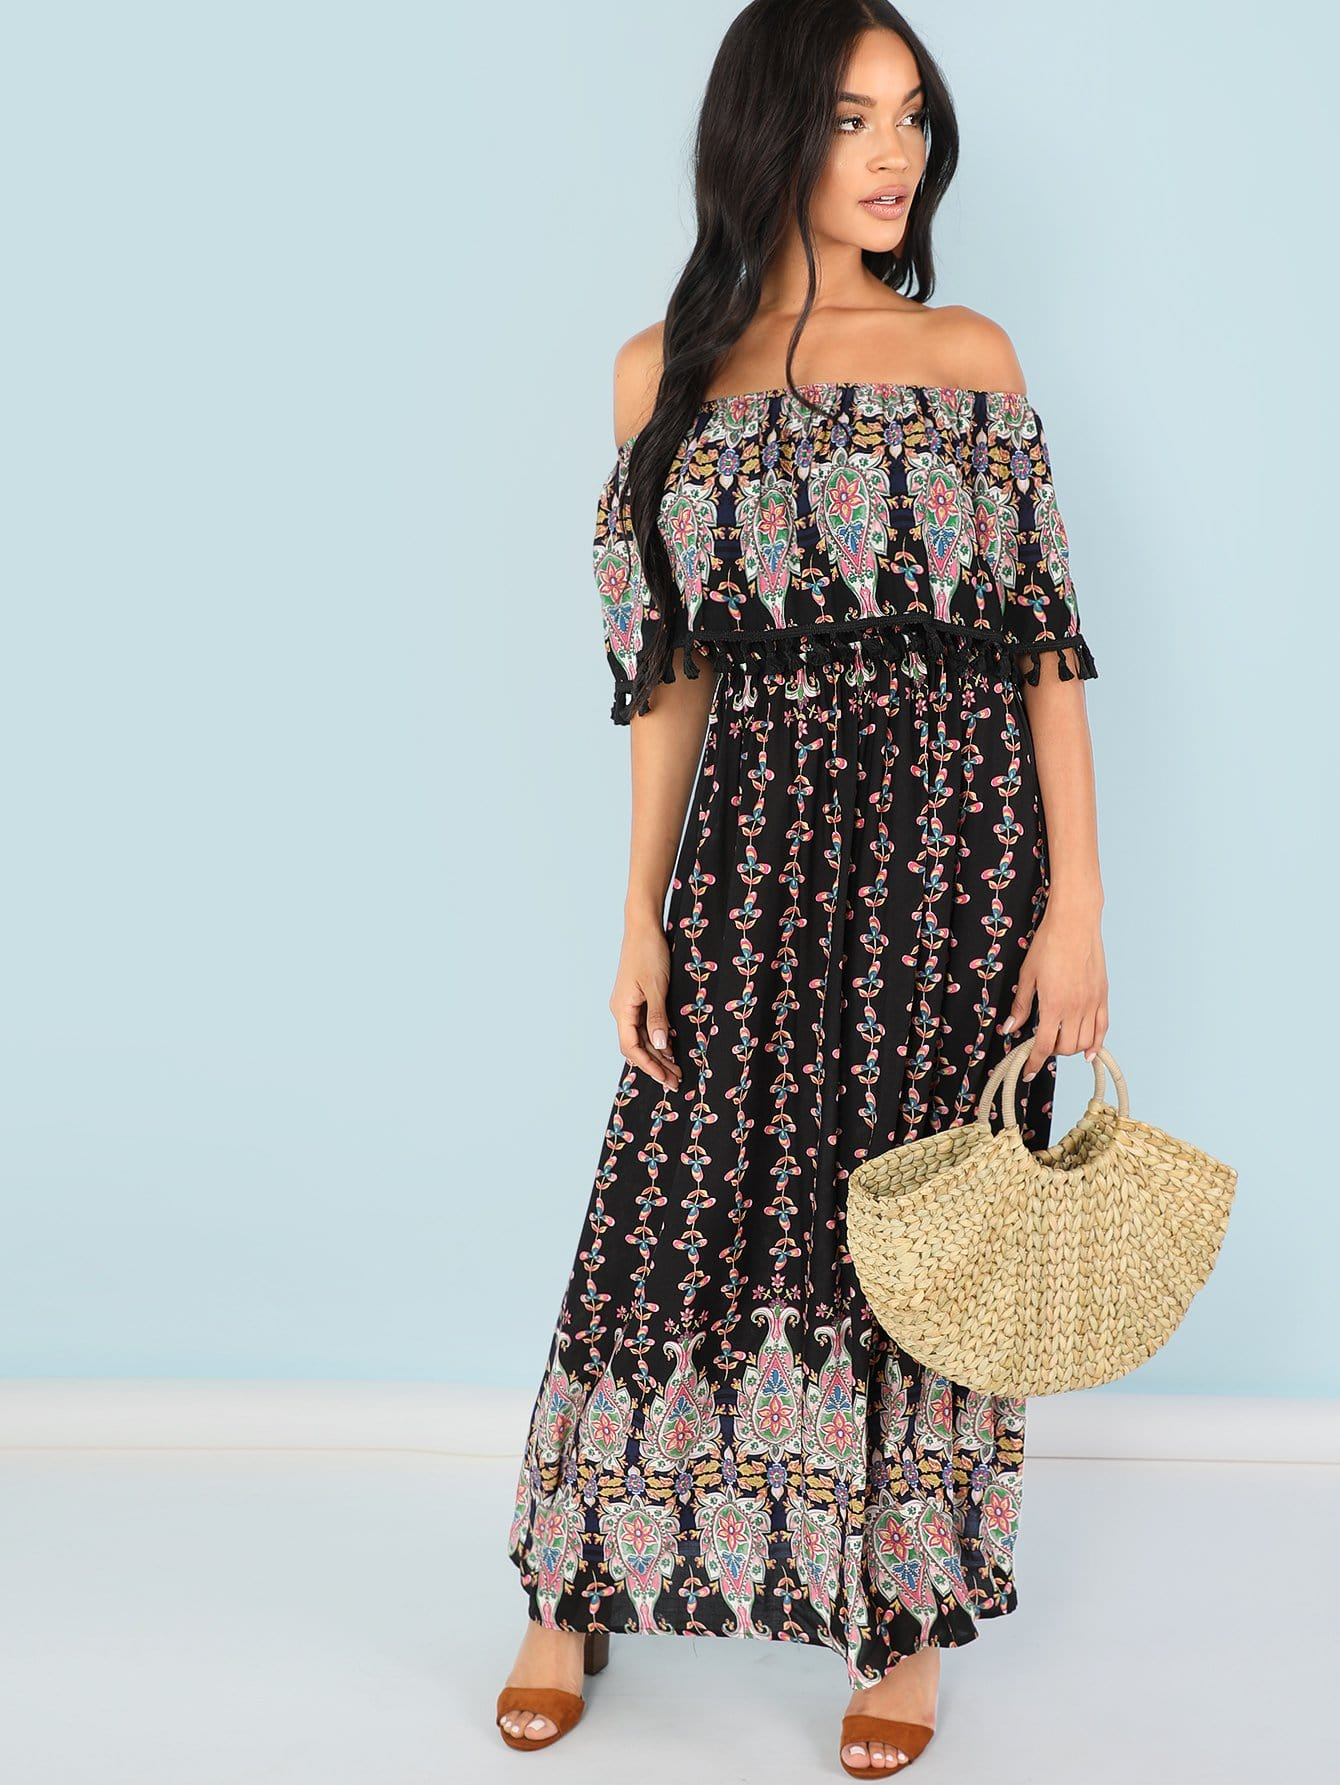 Tassel Embellished Flounce Foldover Front Tribal Dress